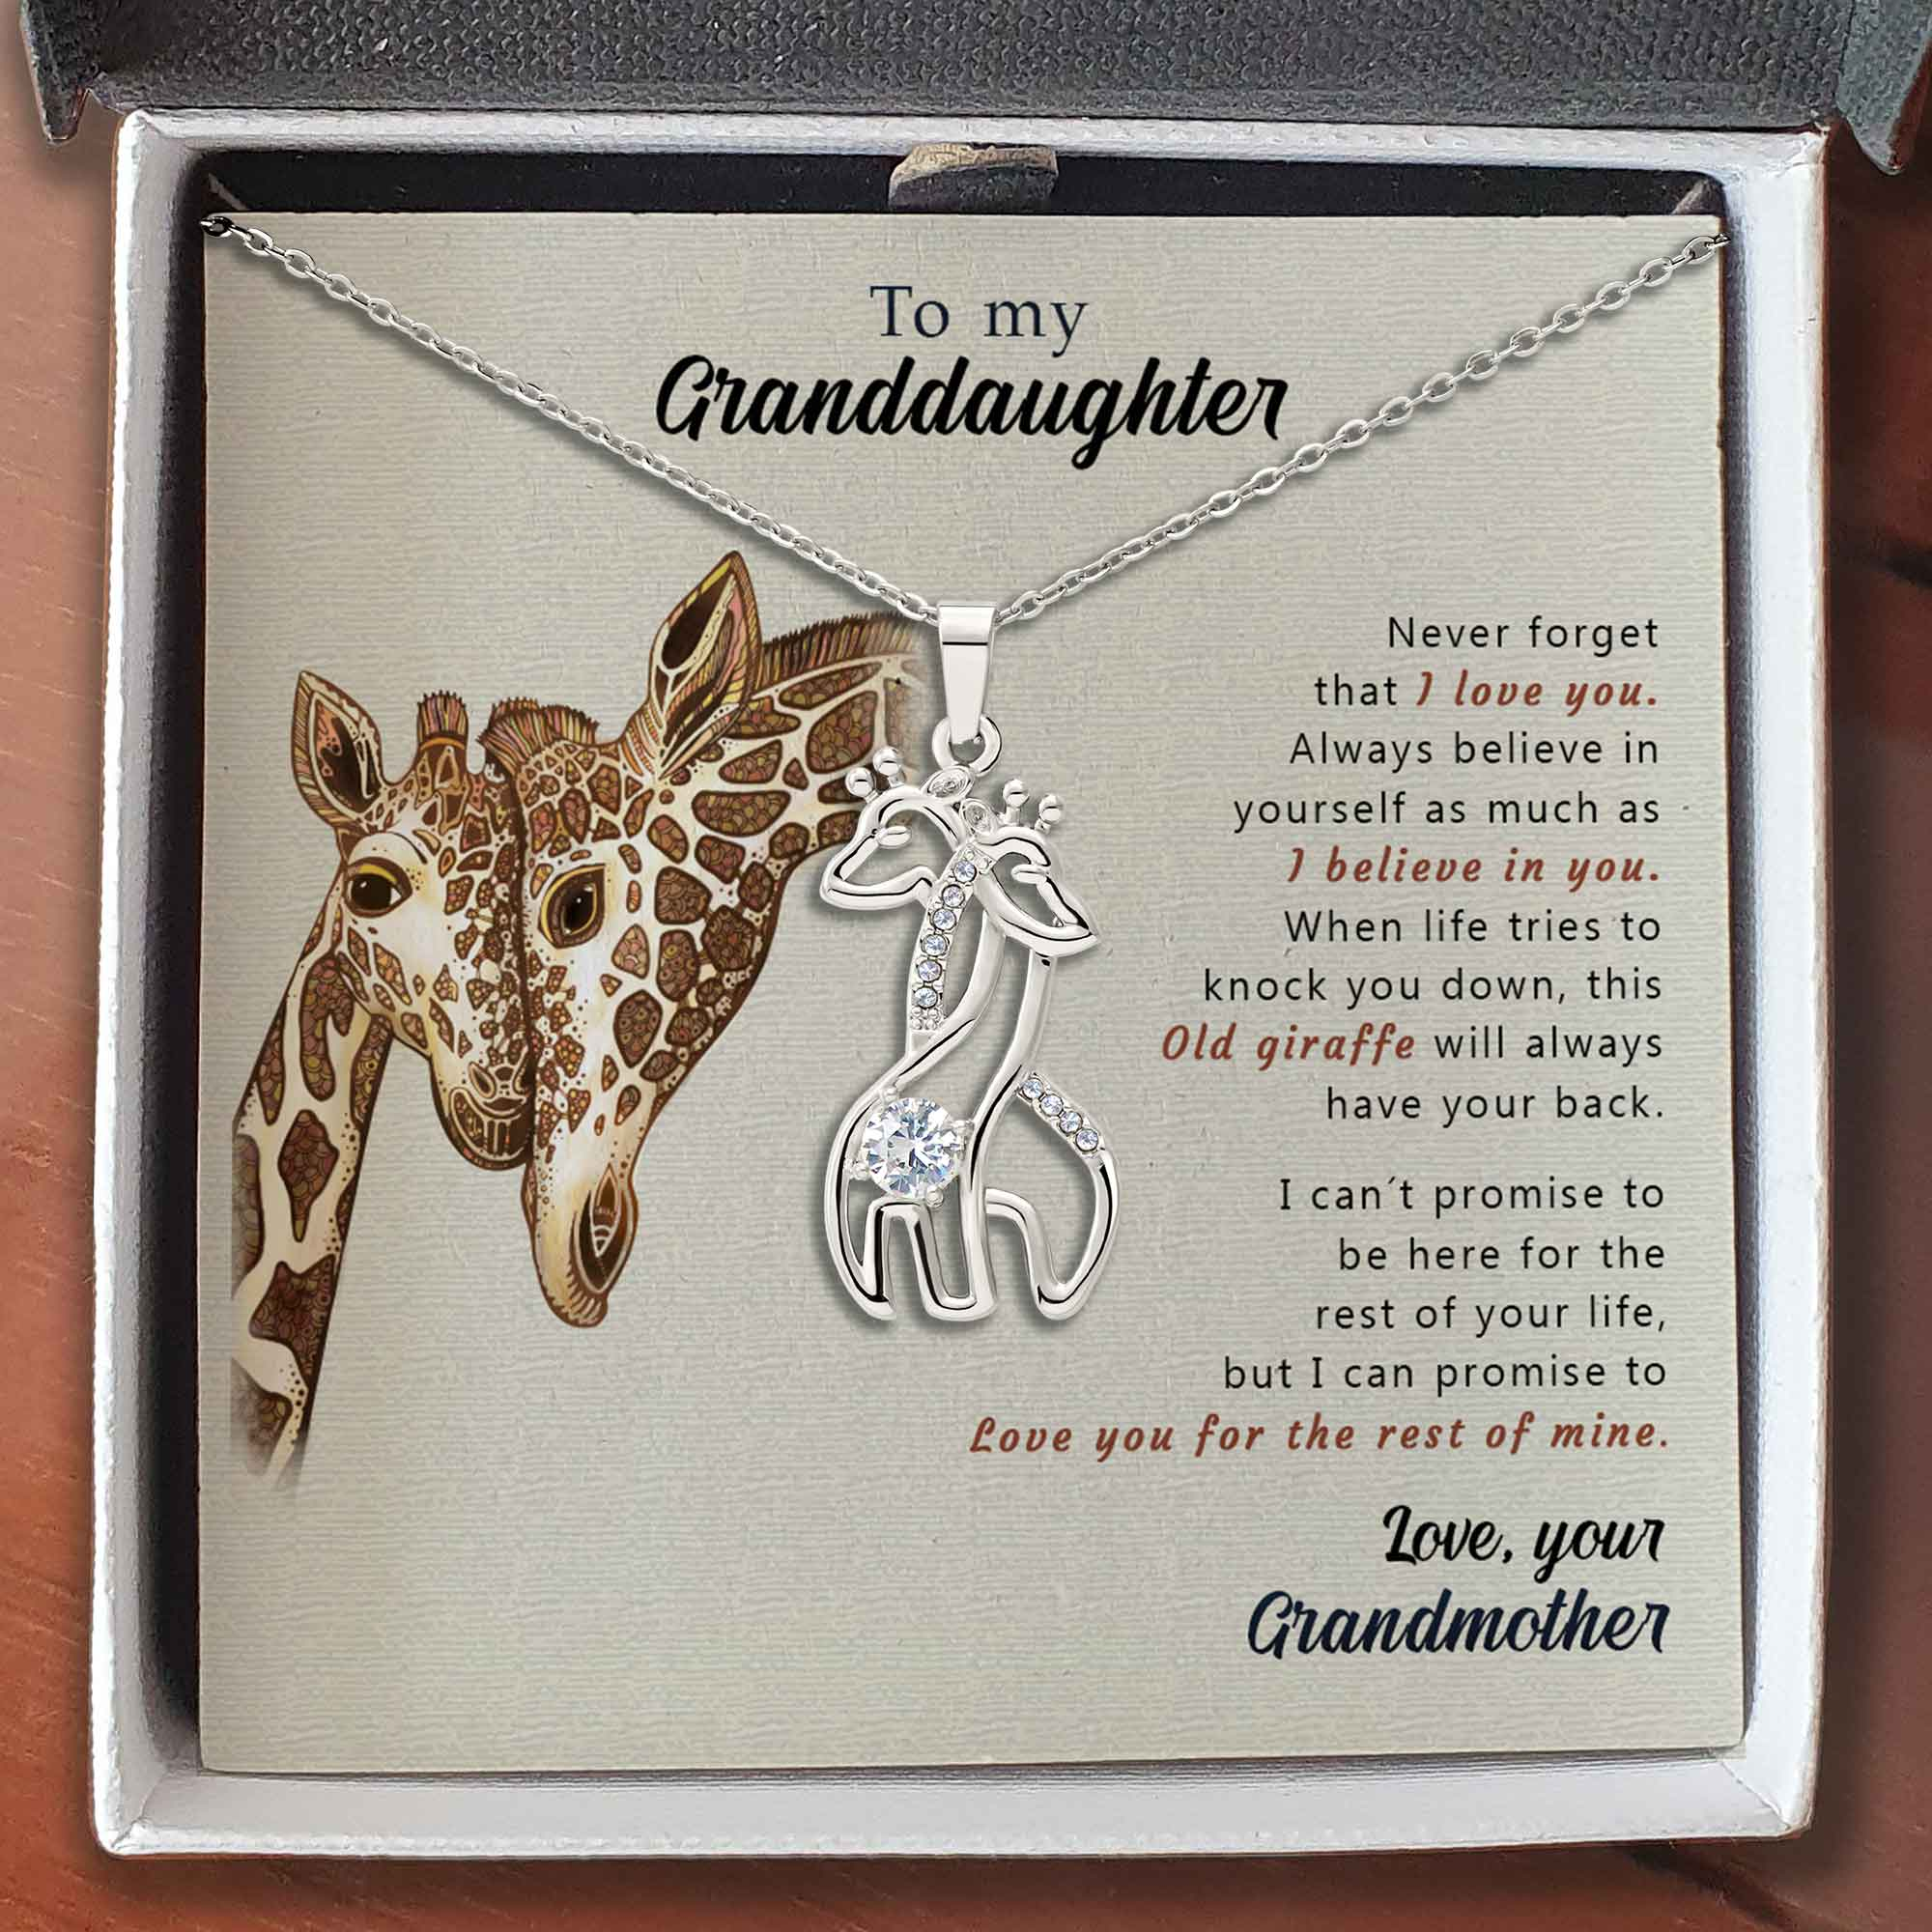 To My Granddaughter - Giraffes Necklace - This Old Giraffe Will Always Have Your Back